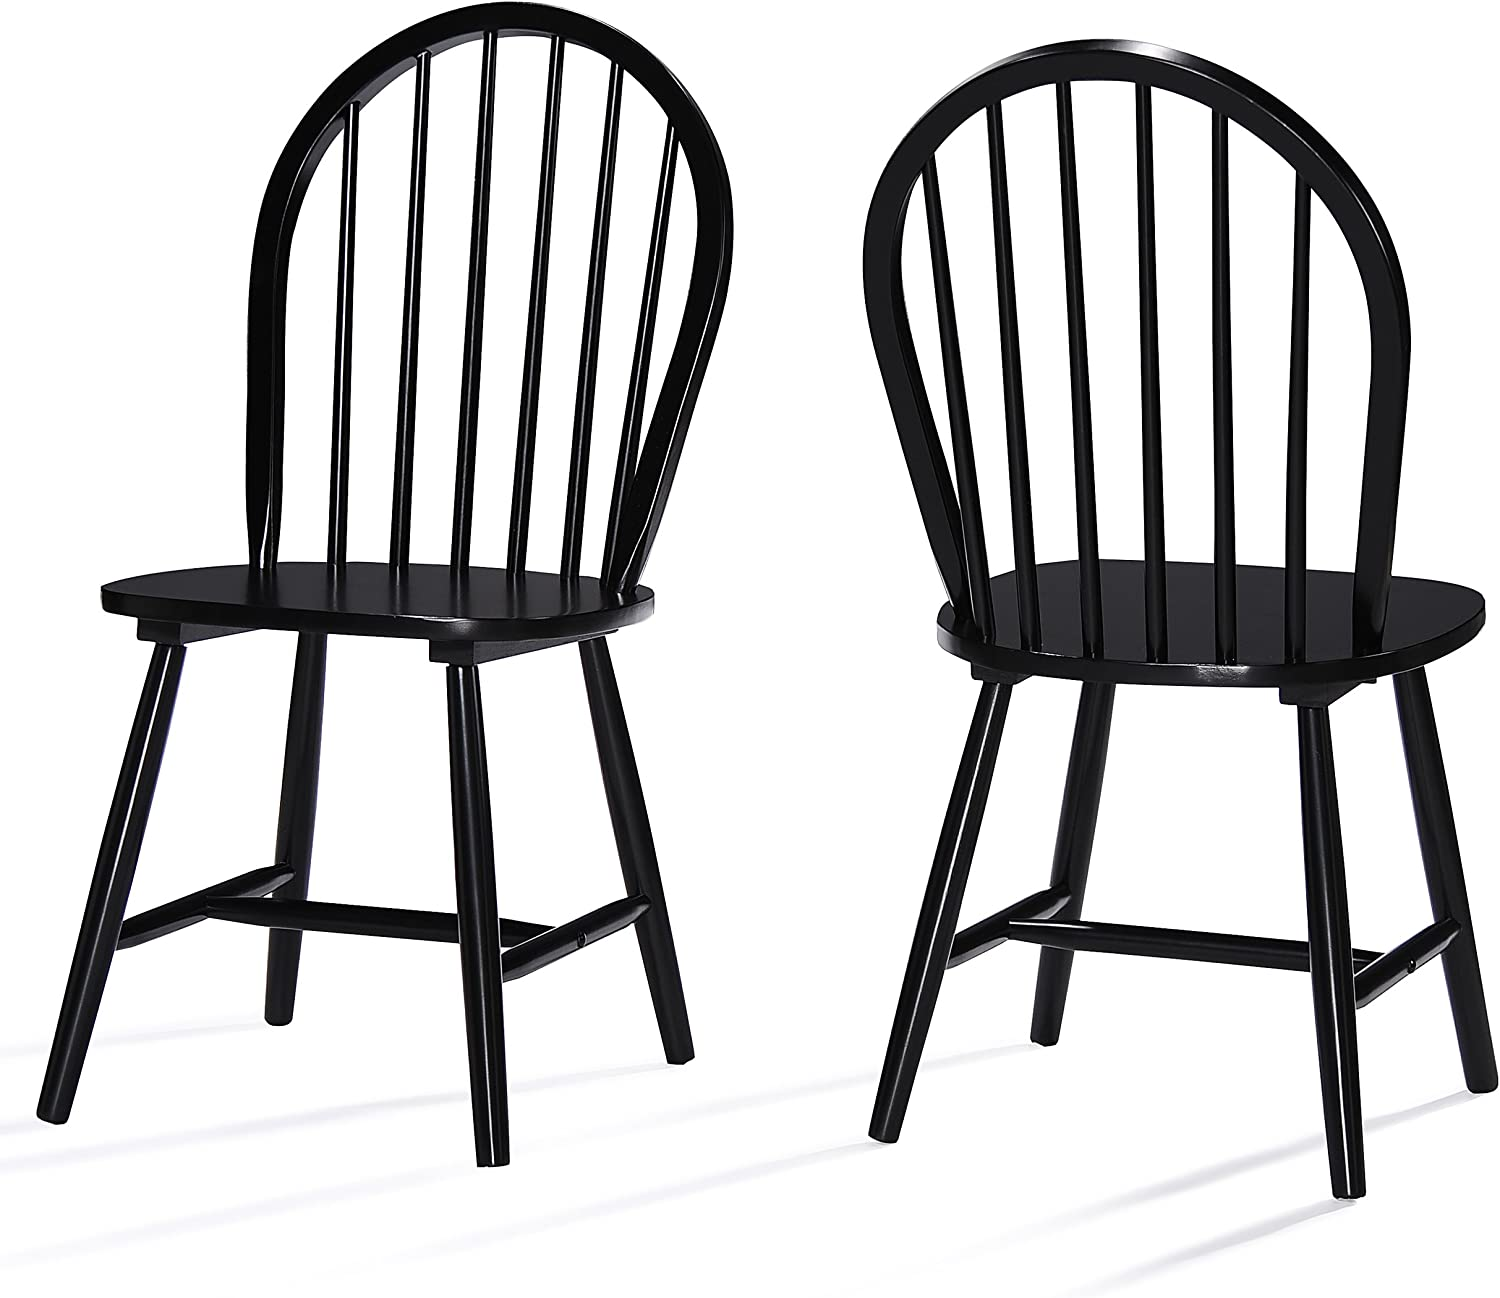 Amazon Com Christopher Knight Home 302241 Declan Farmhouse Cottage High Back Spindled Rubberwood Dining Chairs 2 Pcs Set Black Chairs